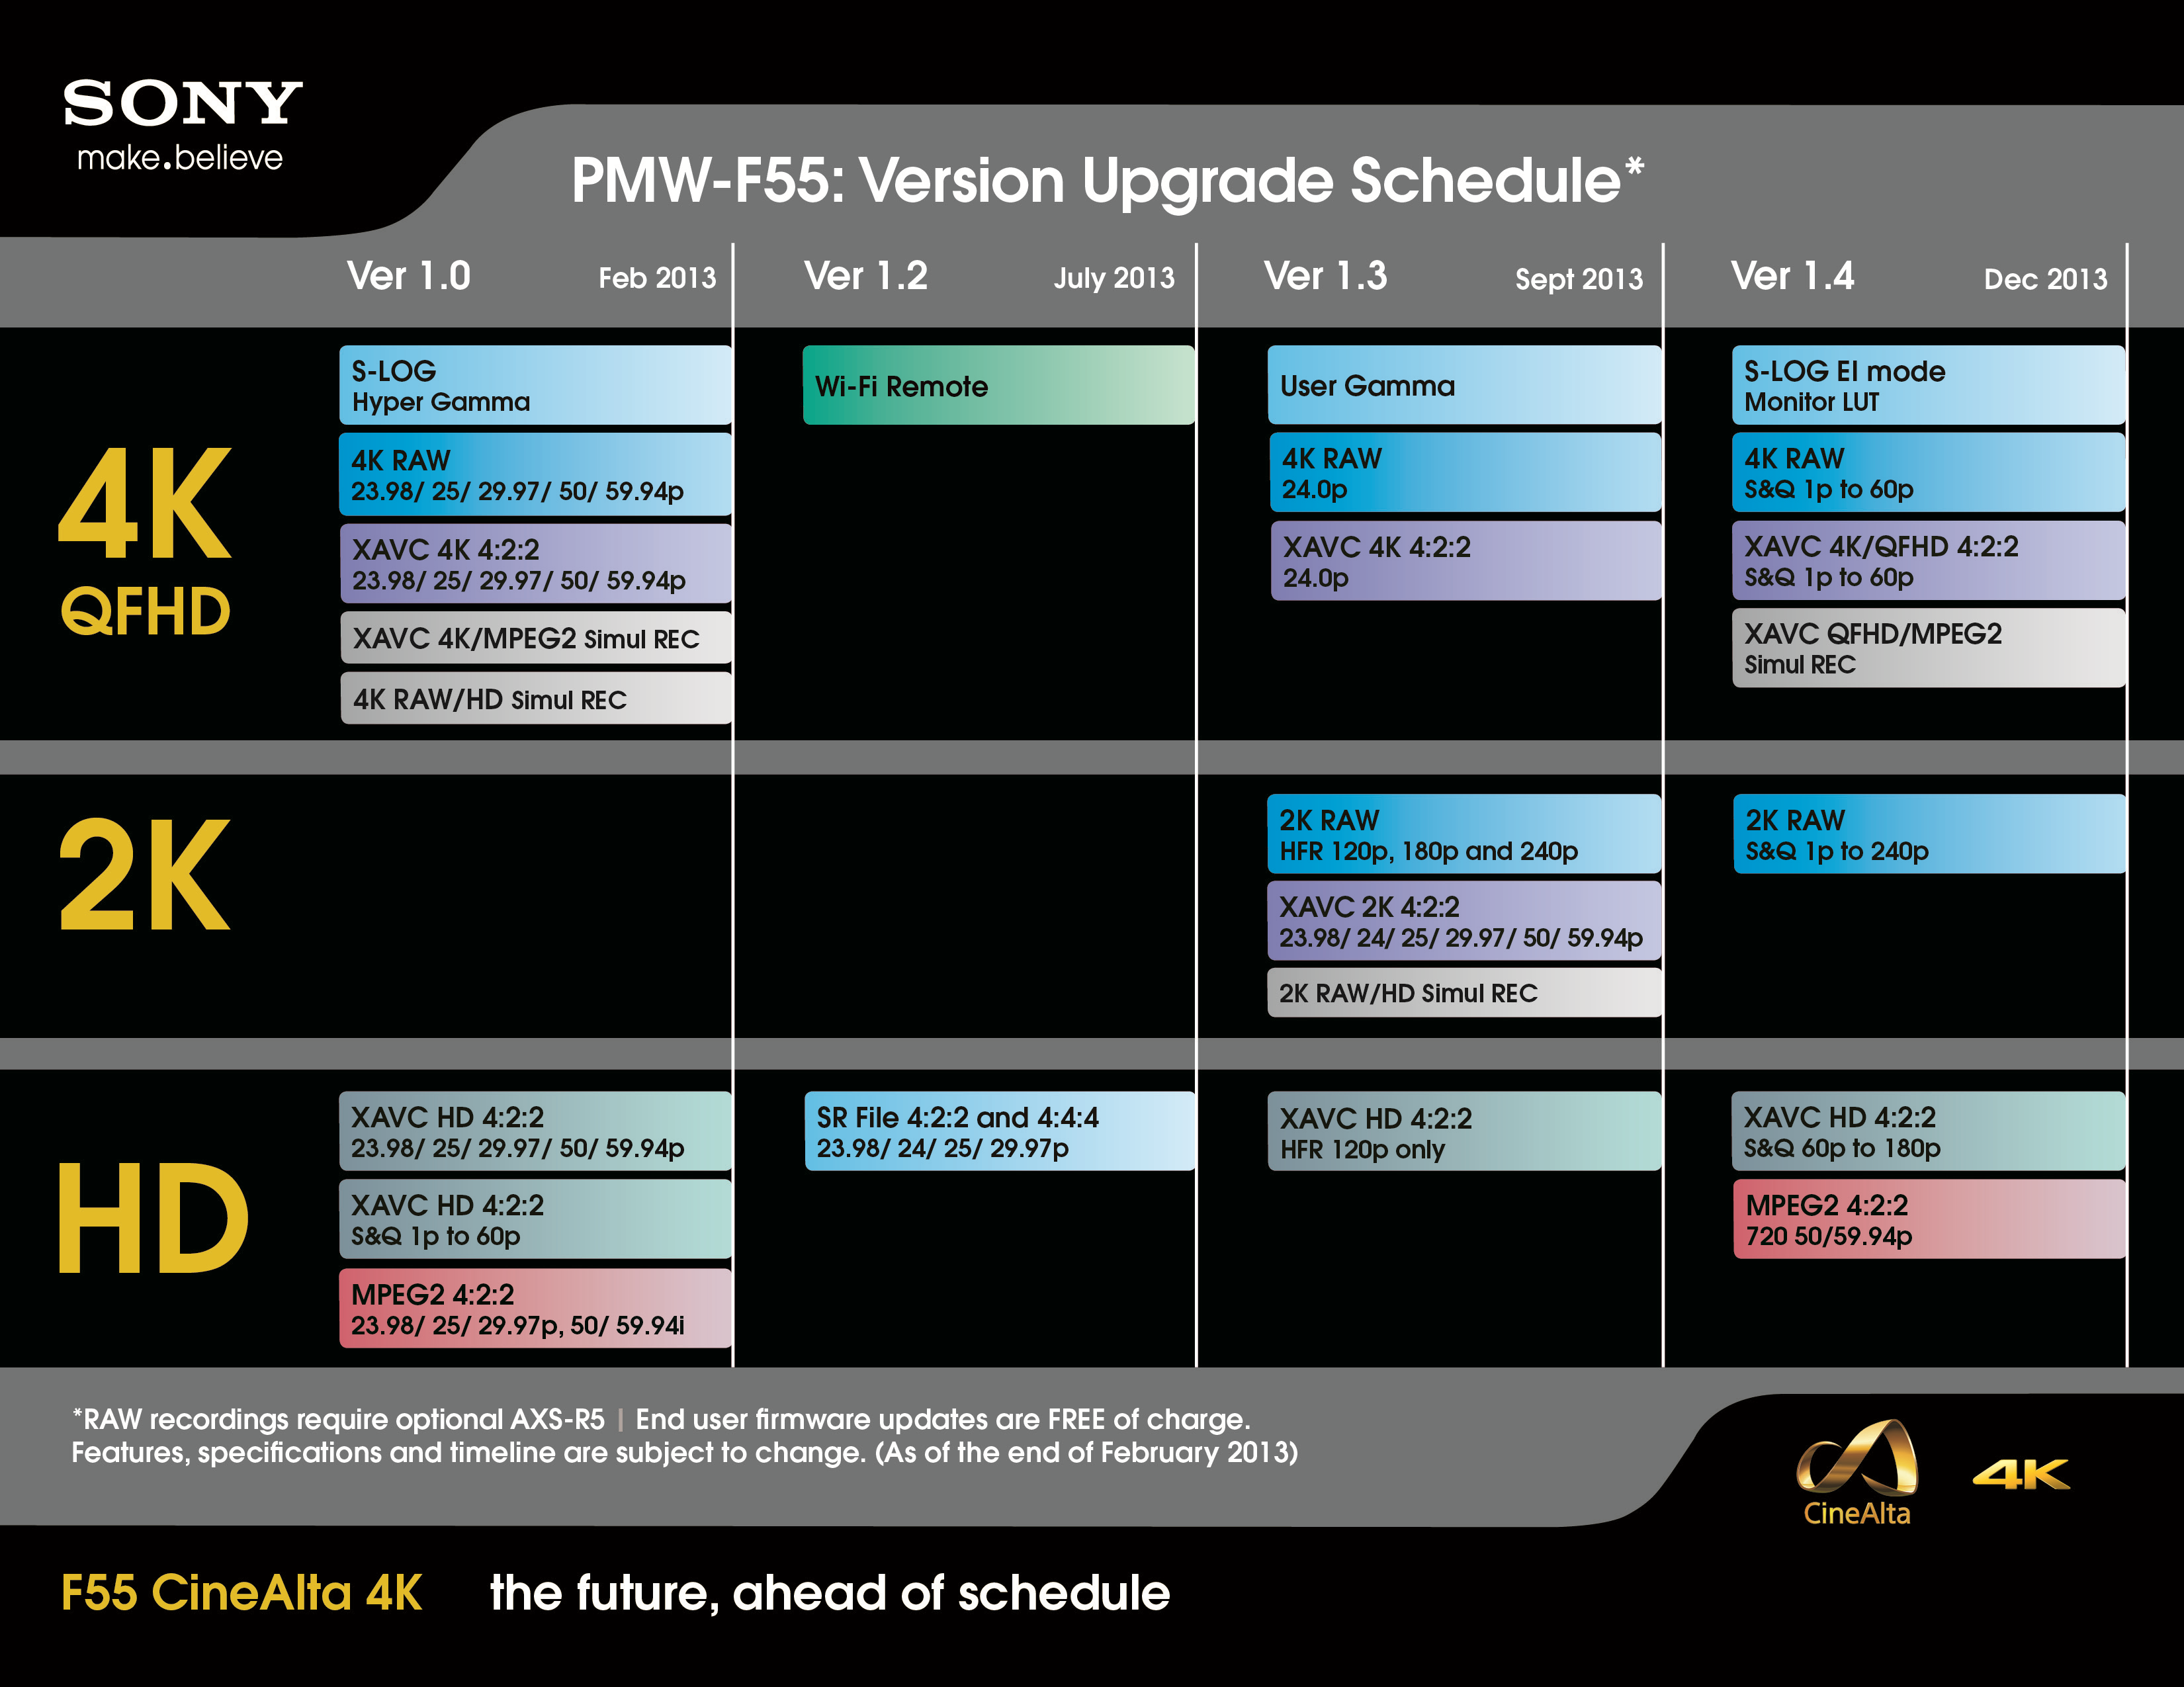 Upgrade schedule for the F55